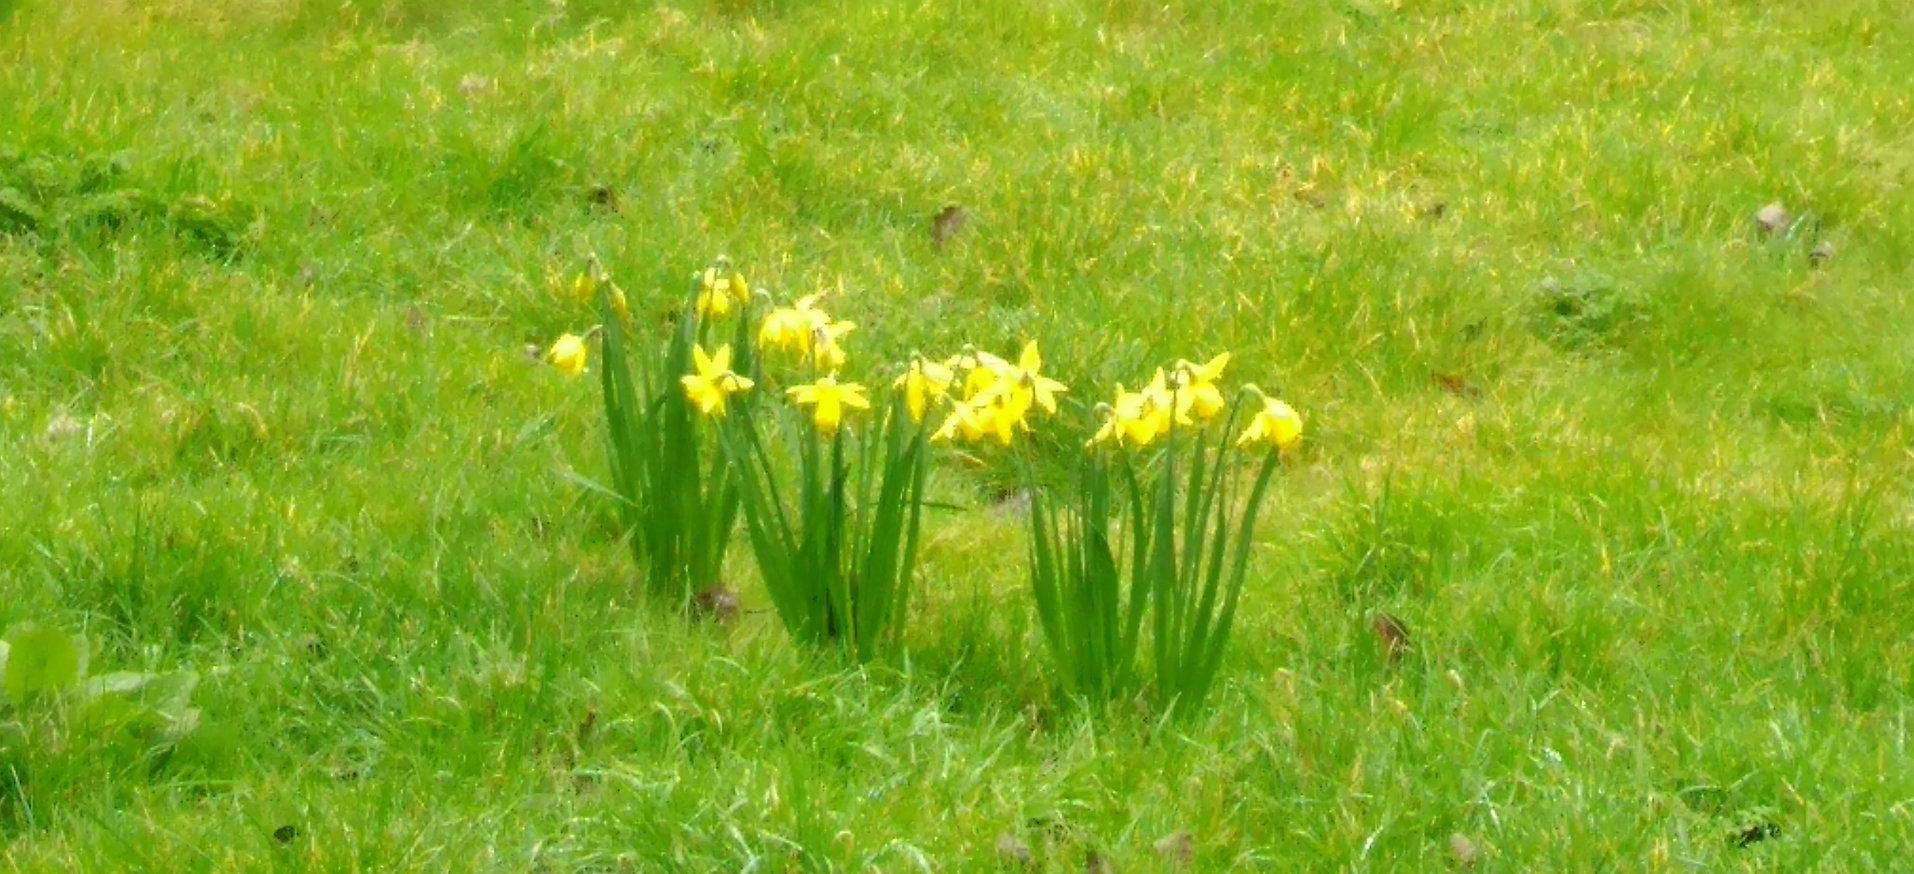 Daffodils in the garden